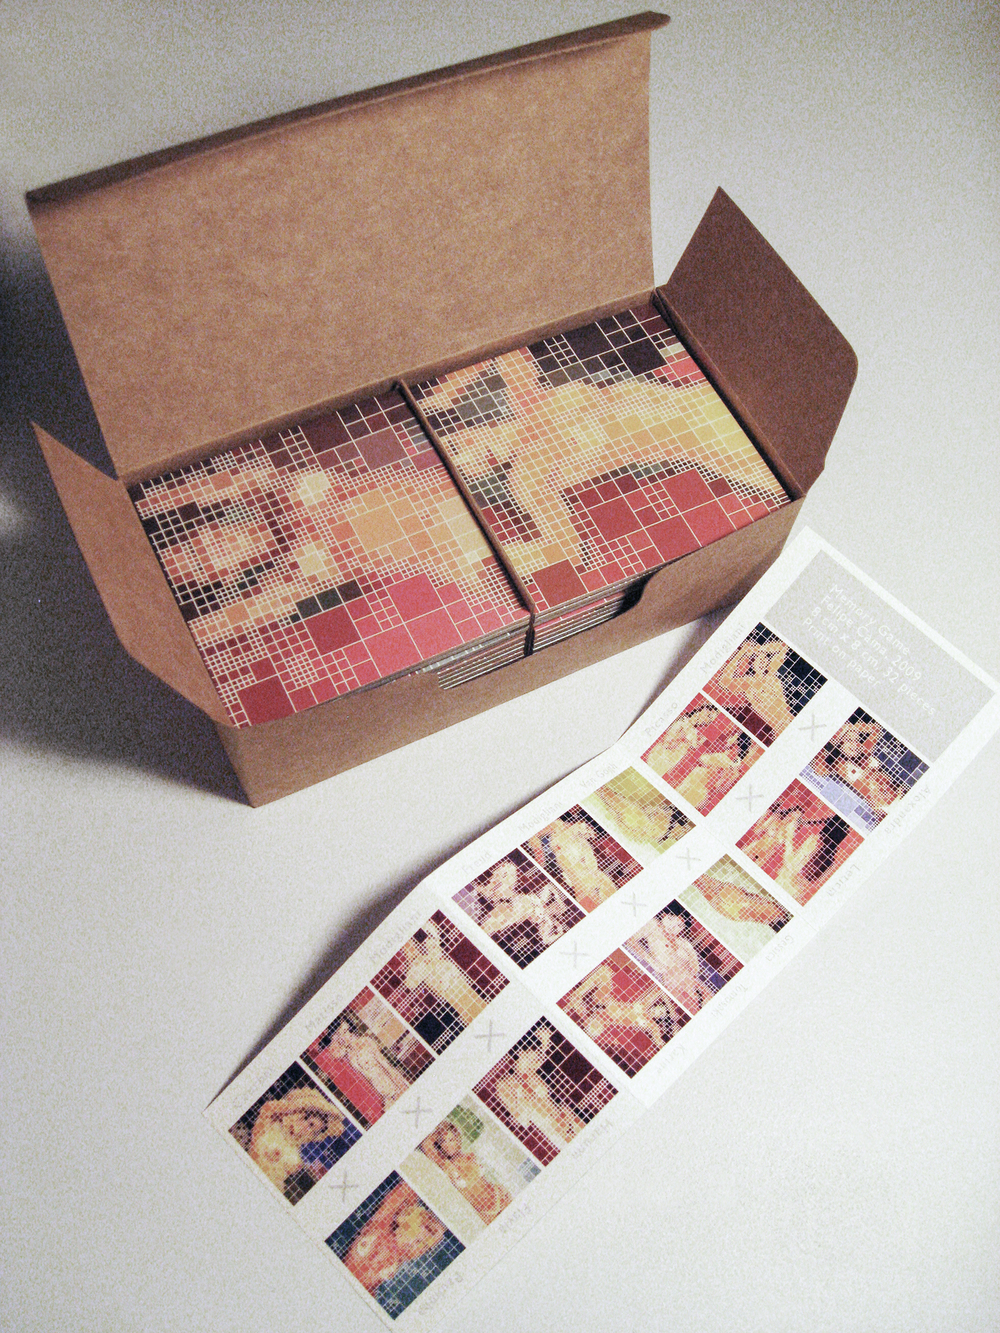 Memory Game • 2009 • 32 pieces printed on paper • 6.5 x 3.1 x 1.9 in (box), 2.9 x 9.4 in (leaflet), 3.1 x 3.1 in (each piece)